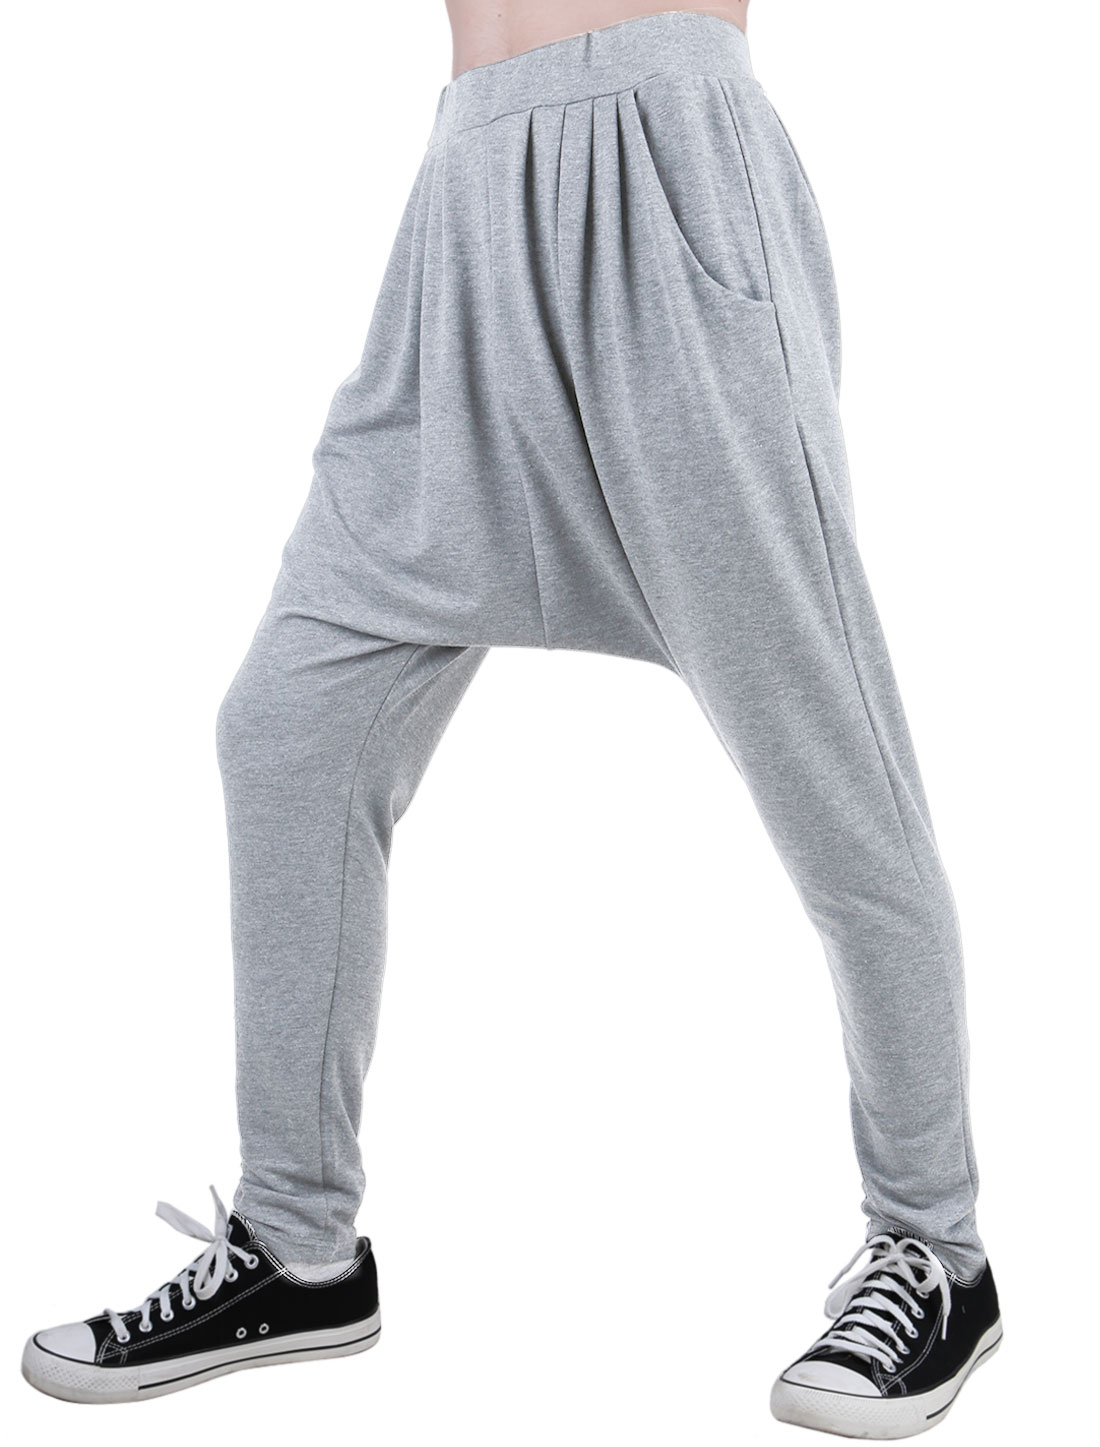 Mens Fashion Hip Hop Casual Trousers Baggy Harem Pants Light Gray W28/30